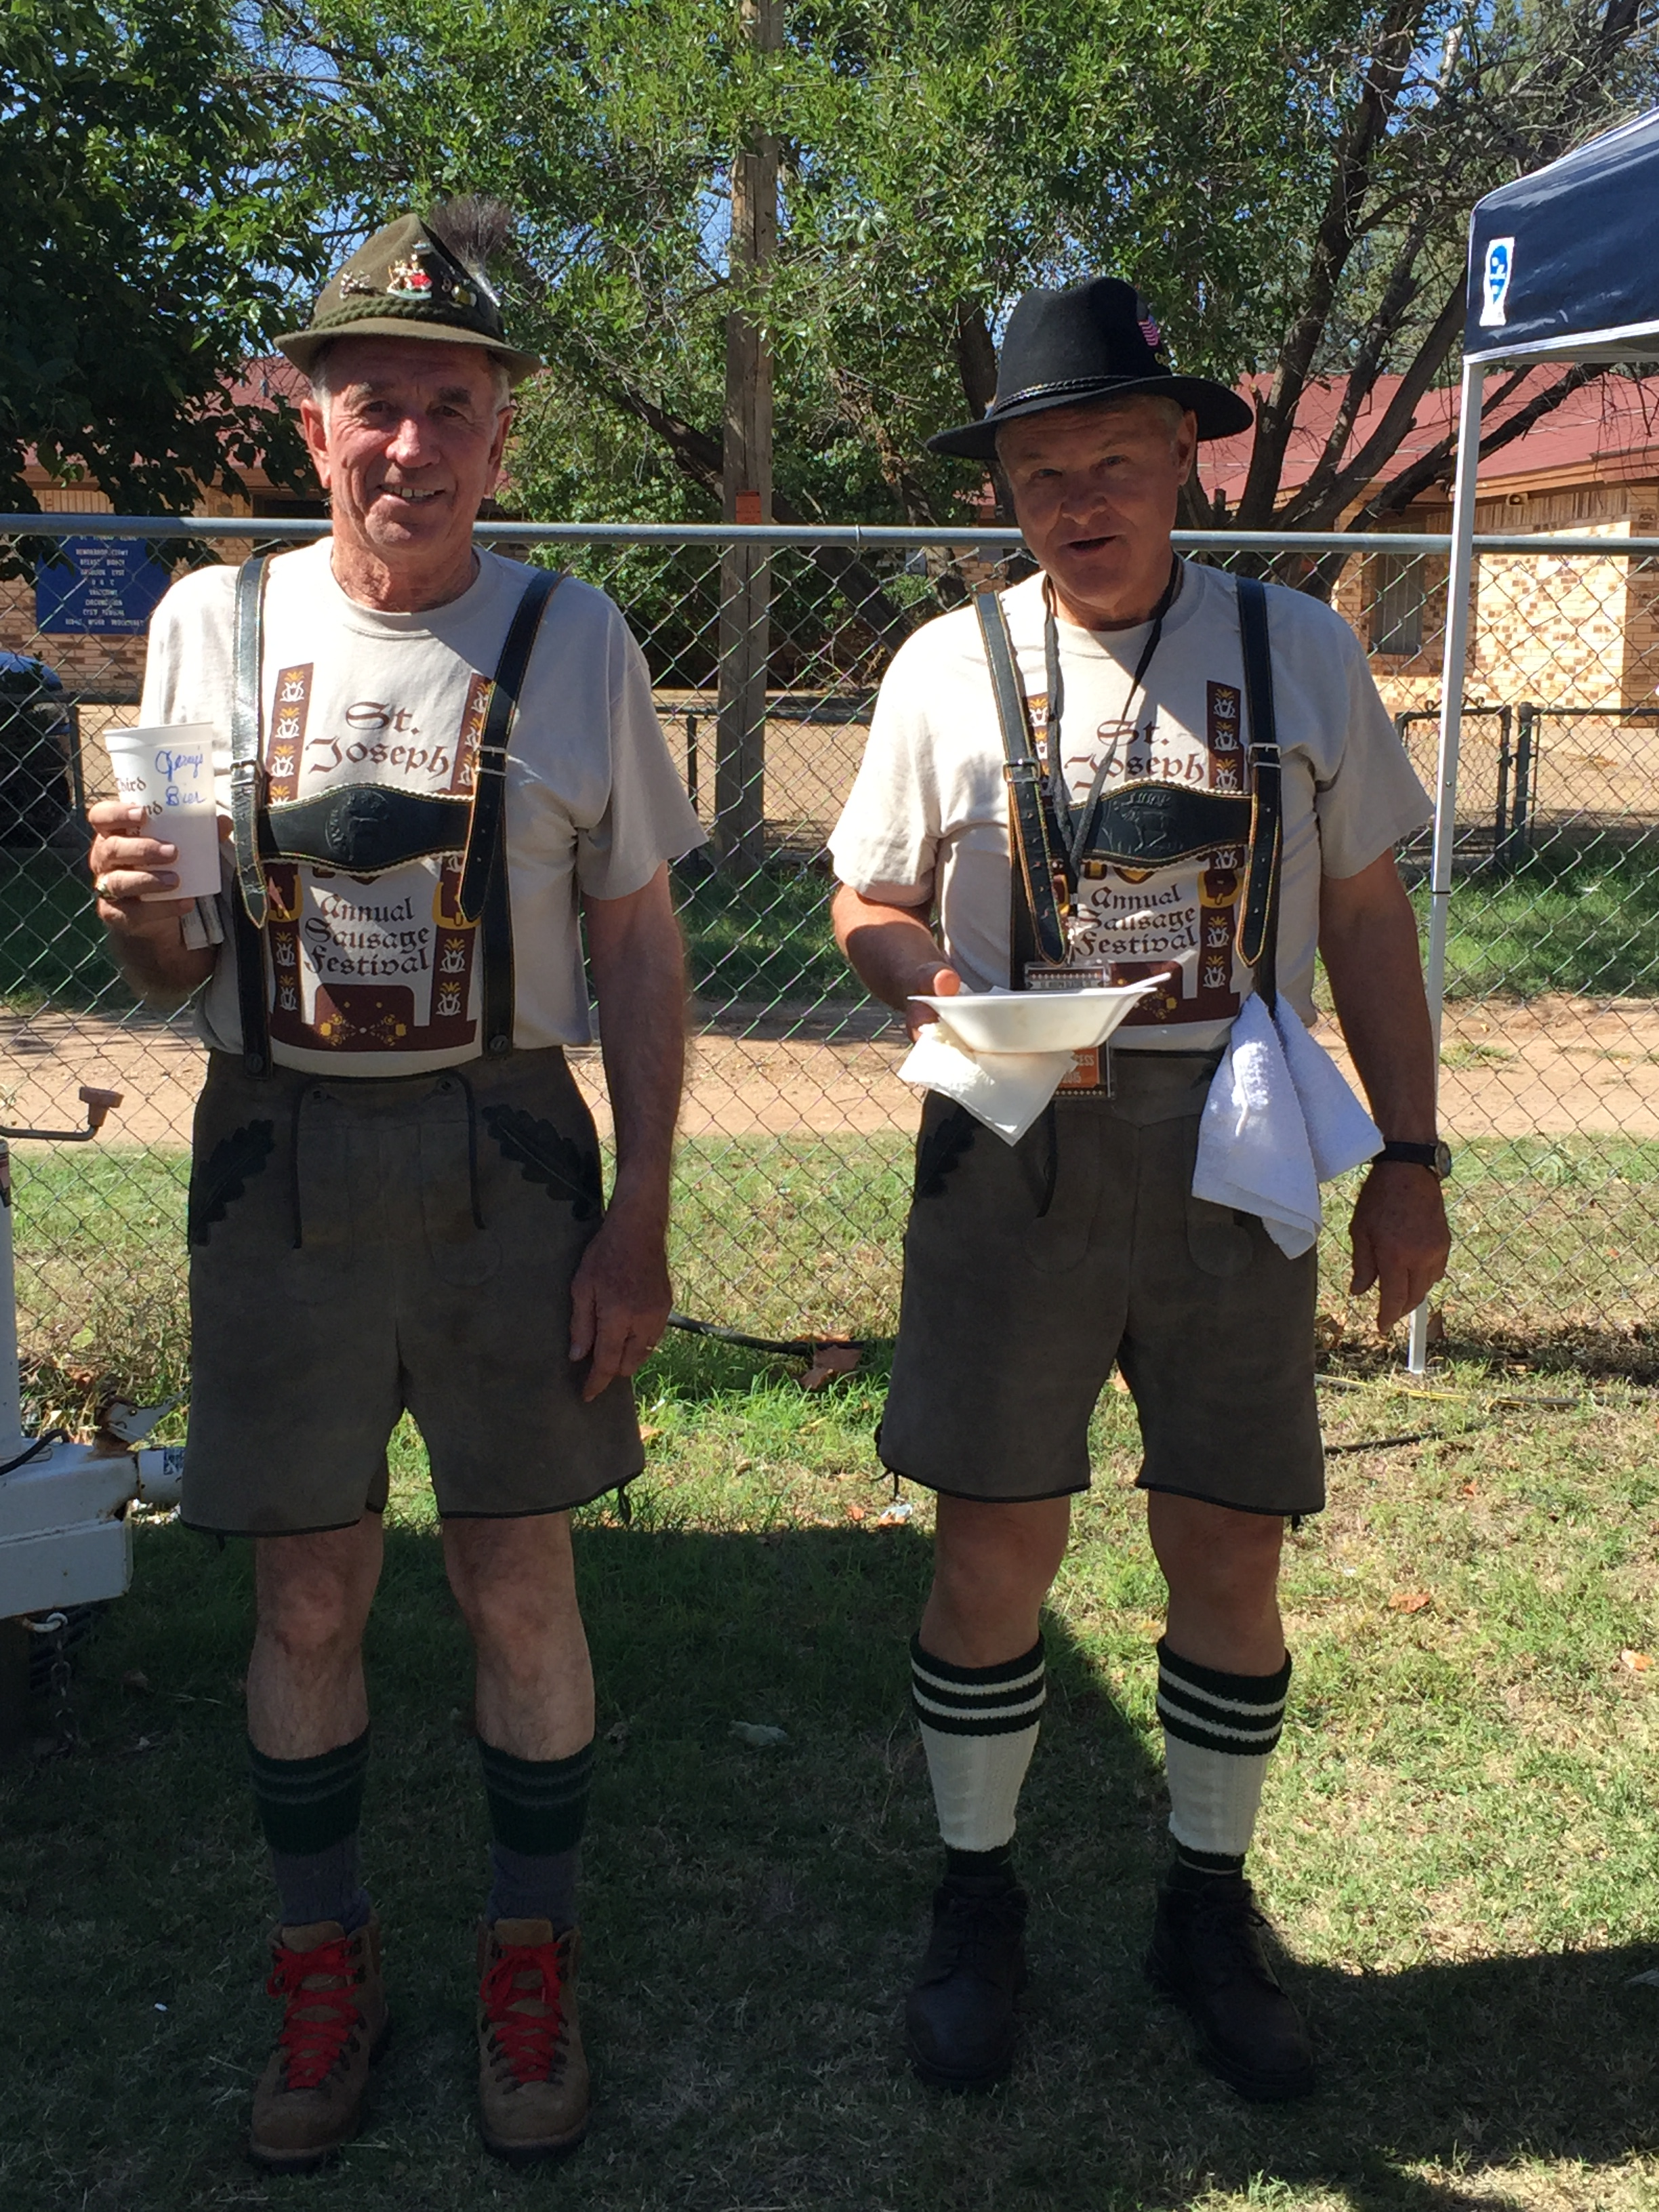 Jerry Kitten & Don Heinrich in Lederhosen